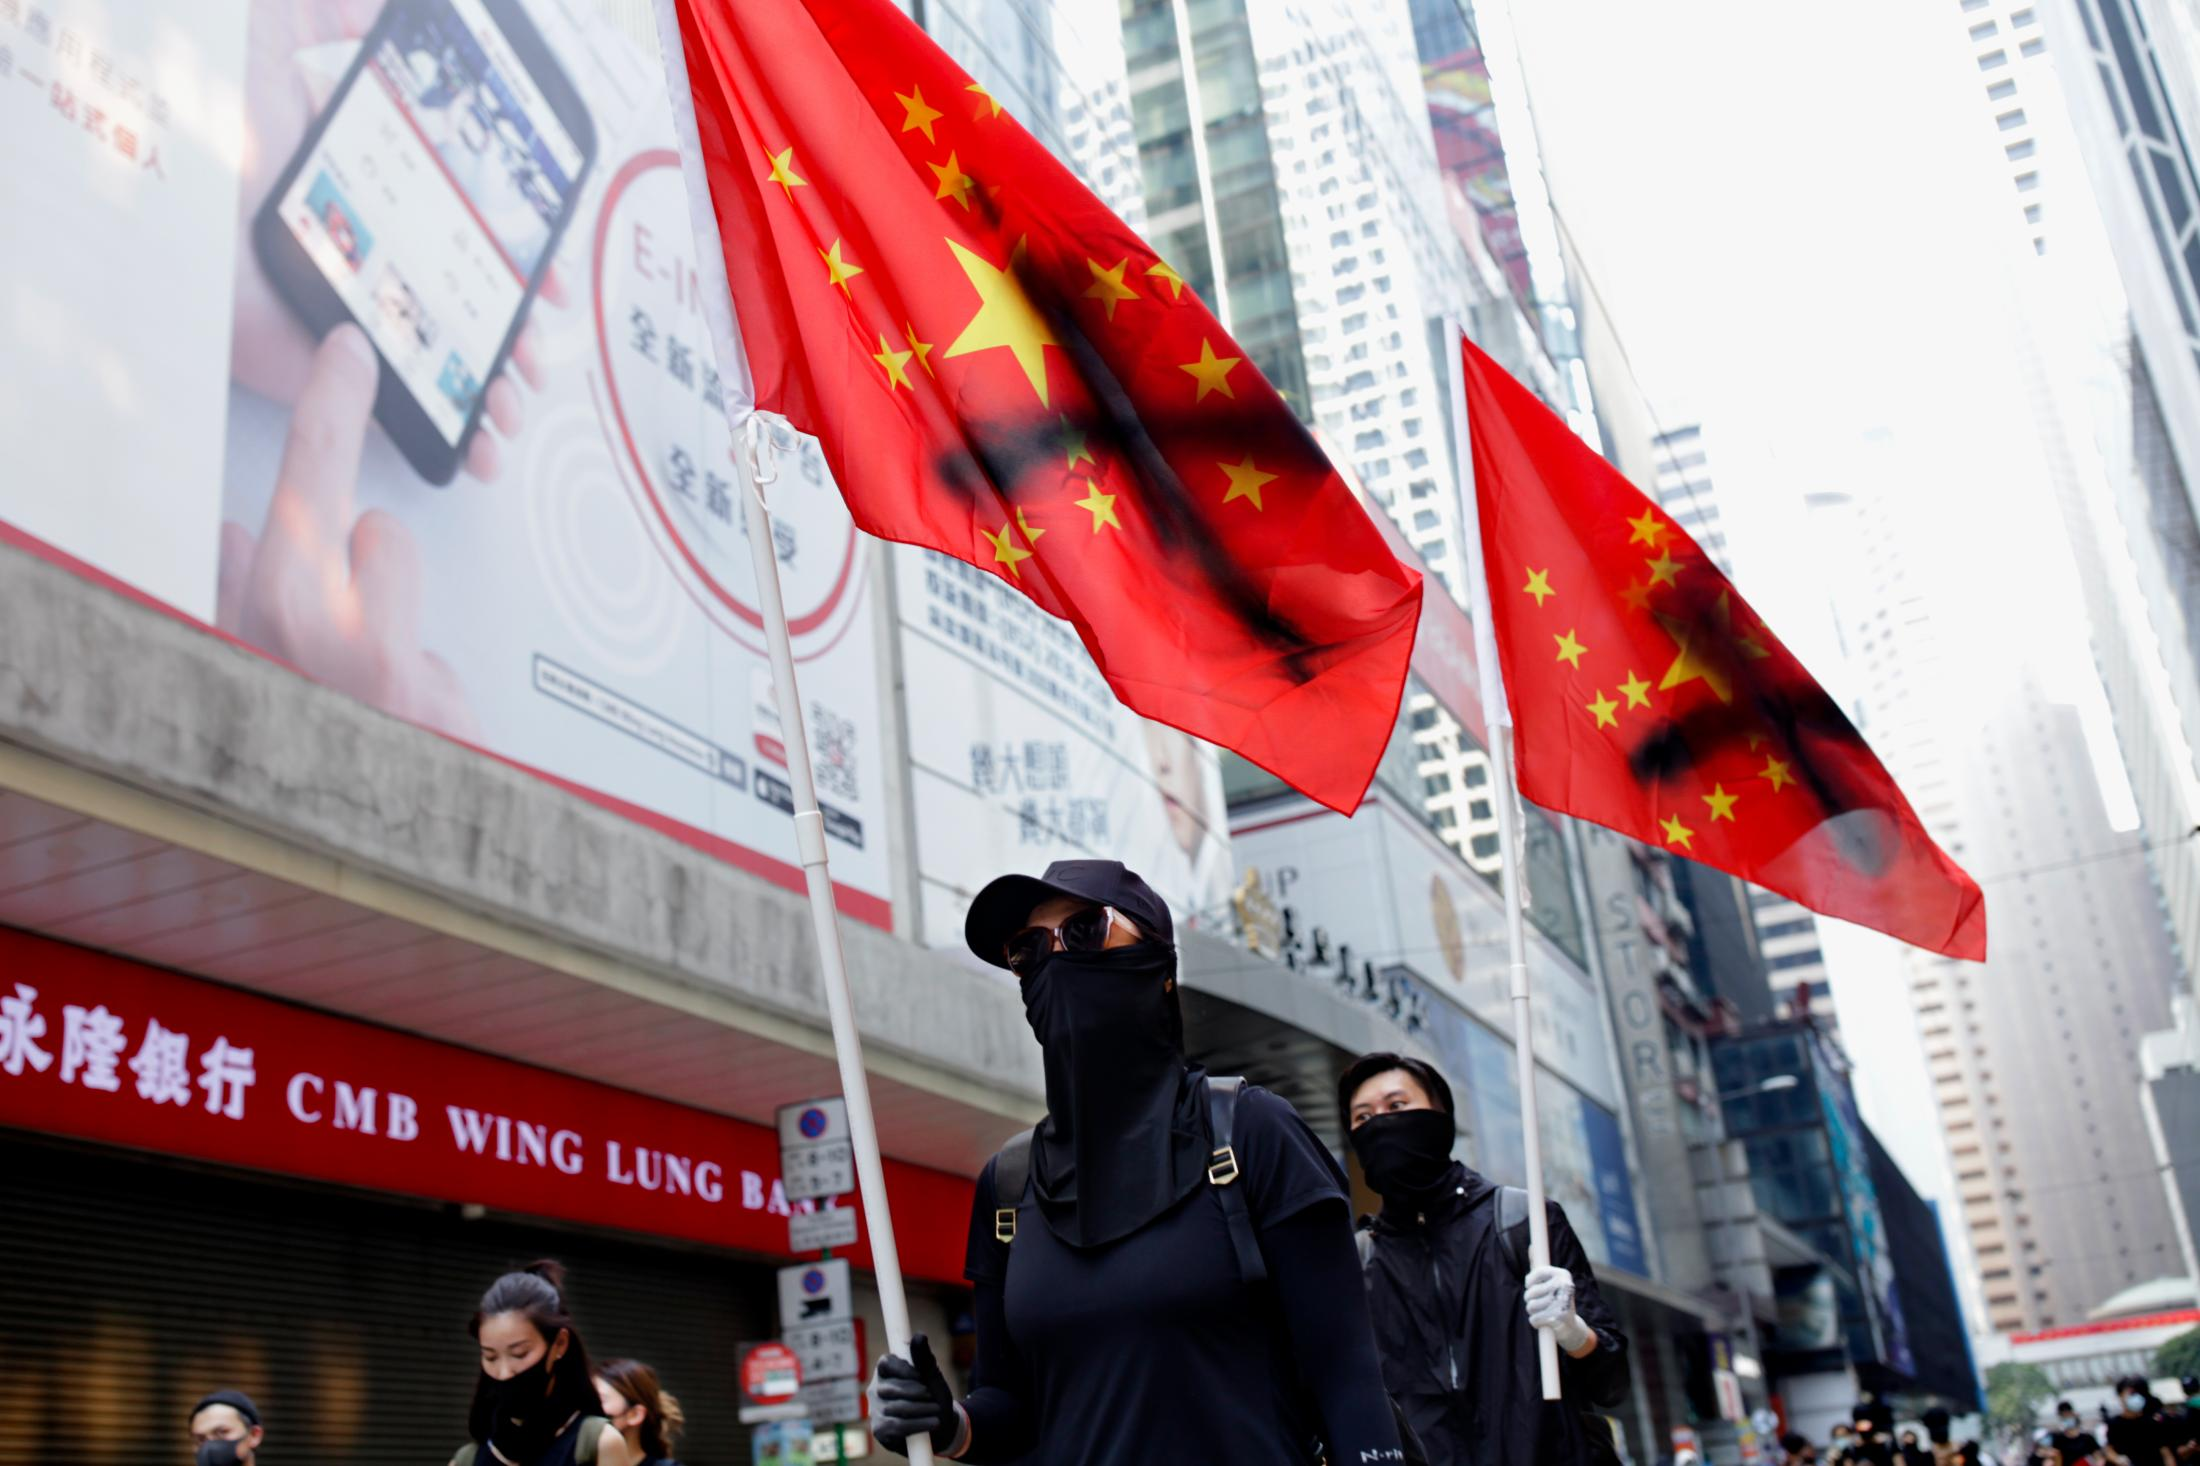 Two protesters carry flags of the People's Republic of China, with a painted X, on the 70th anniversary of the Chinese Communist Party in an unauthorized march.